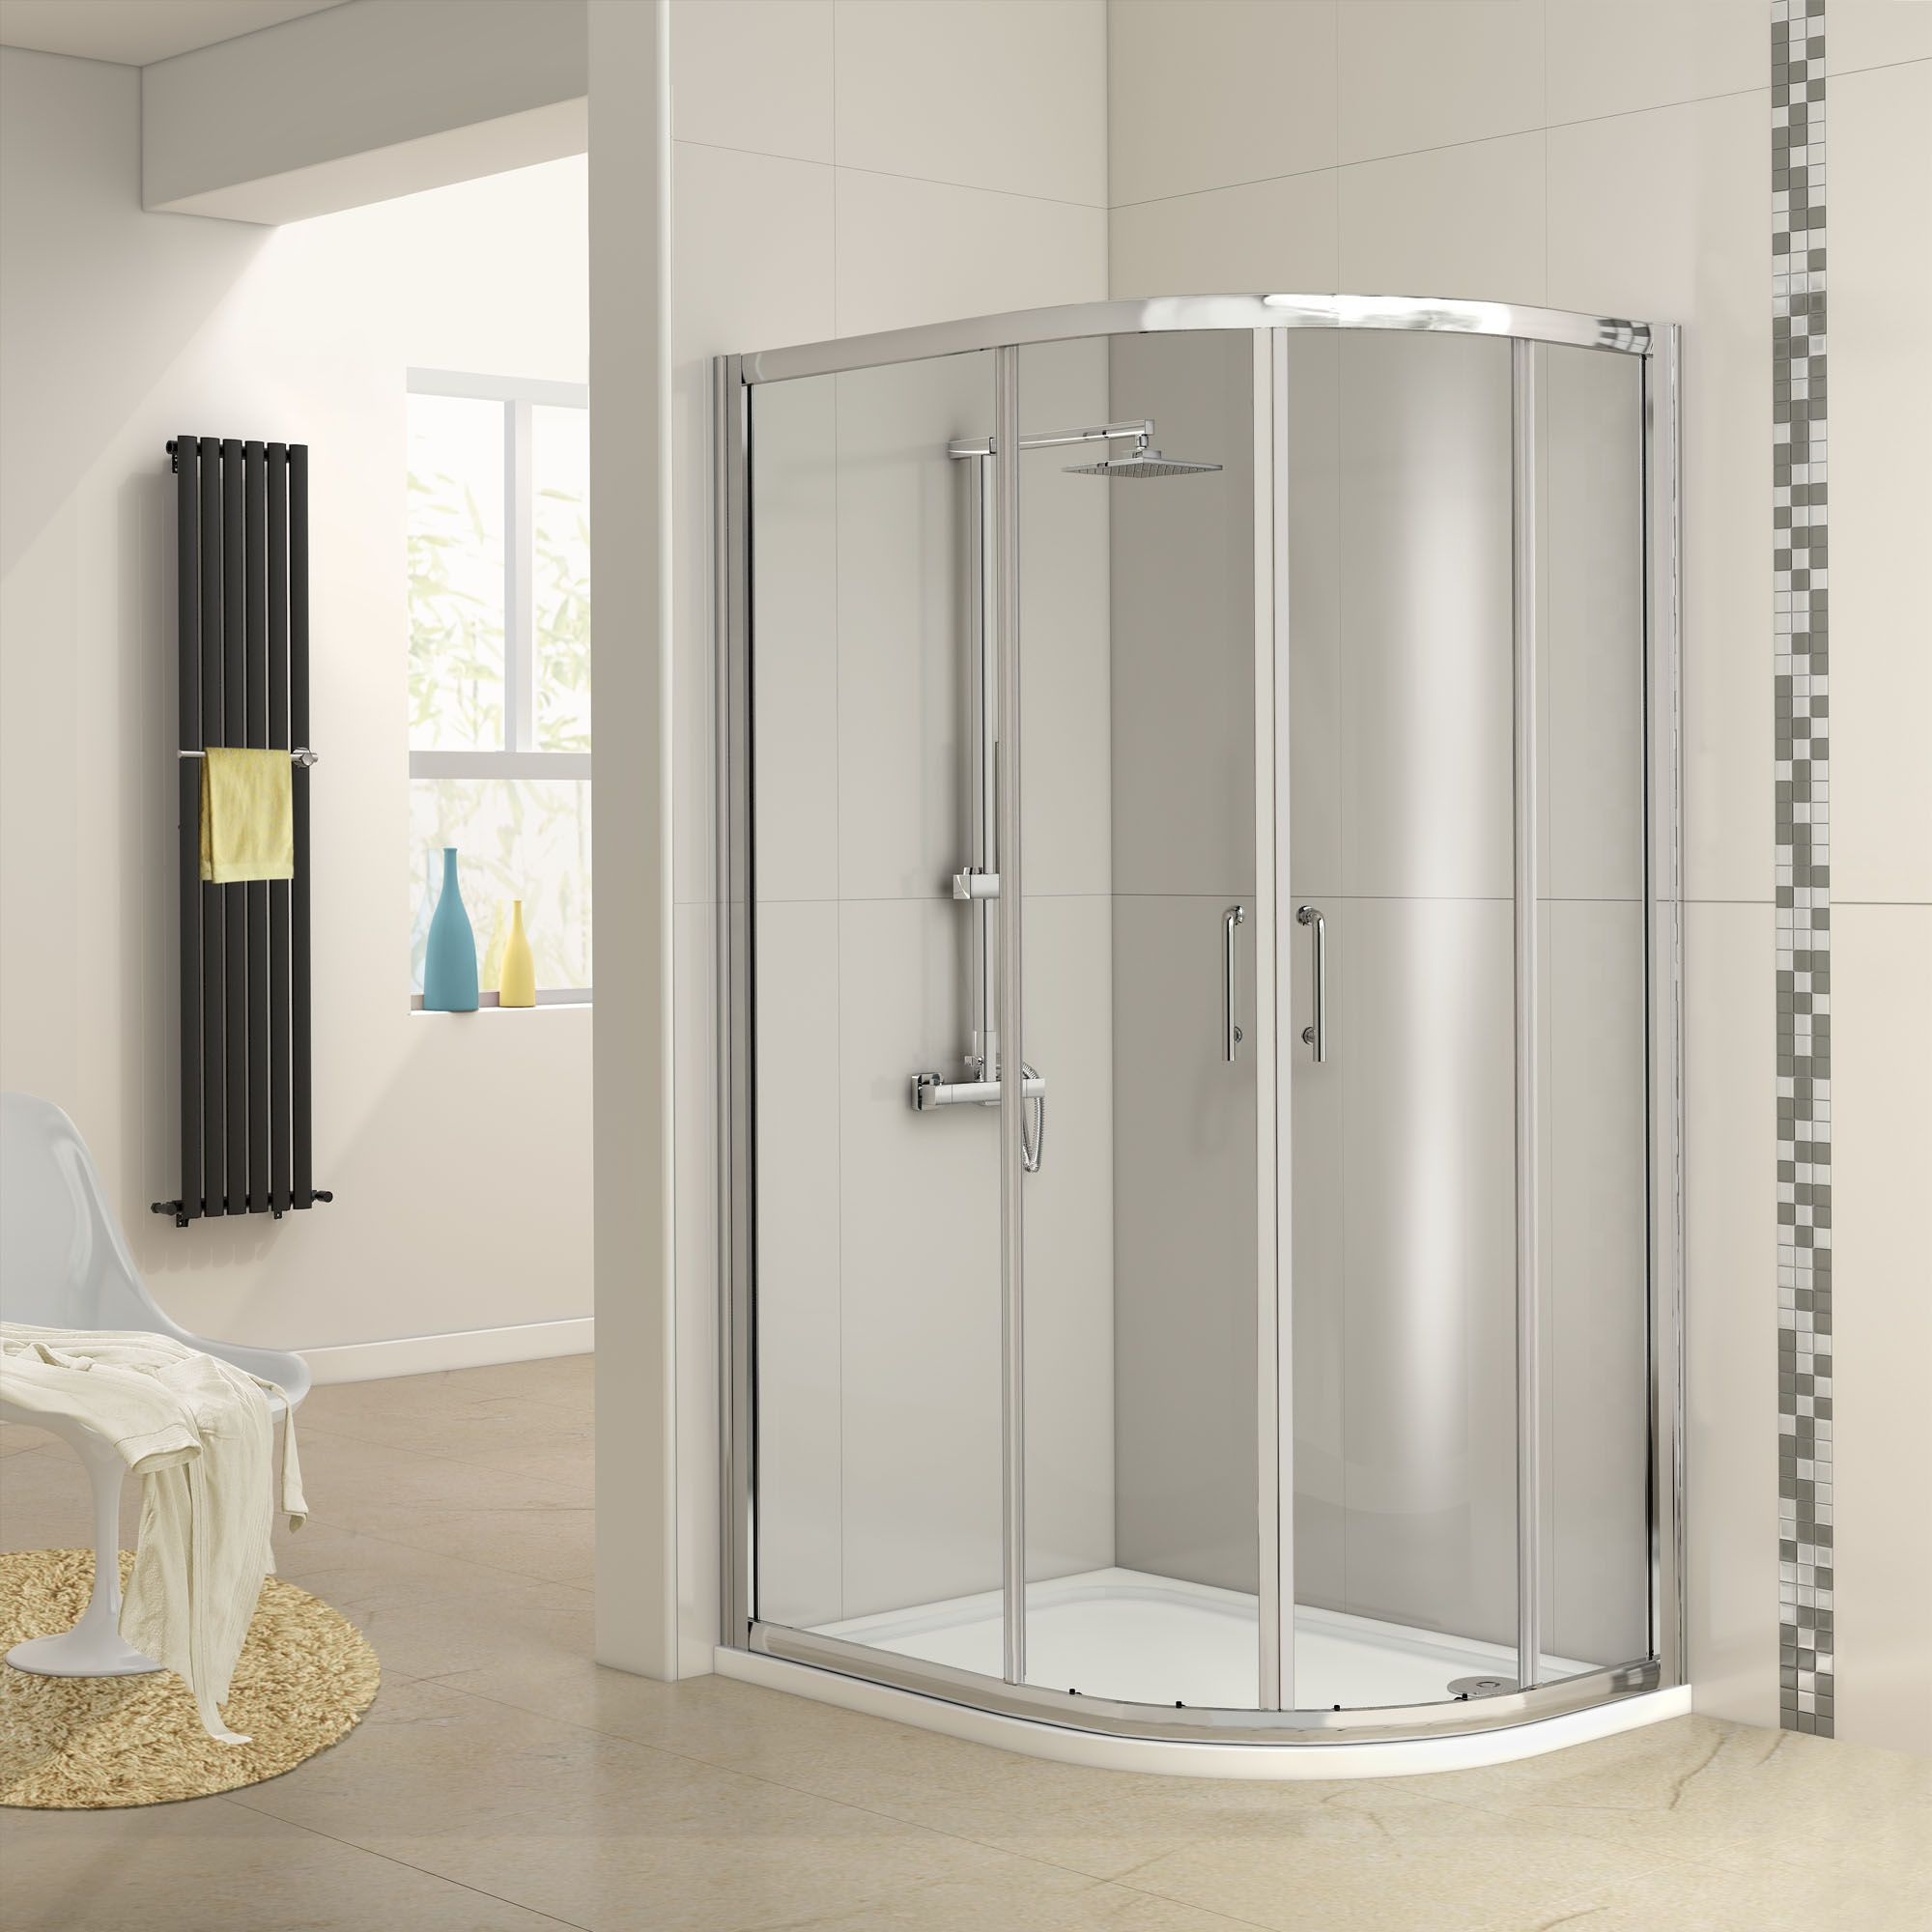 Best 25 quadrant shower enclosures ideas on pinterest quadrant shower small shower tray and - Small shower enclosures ...